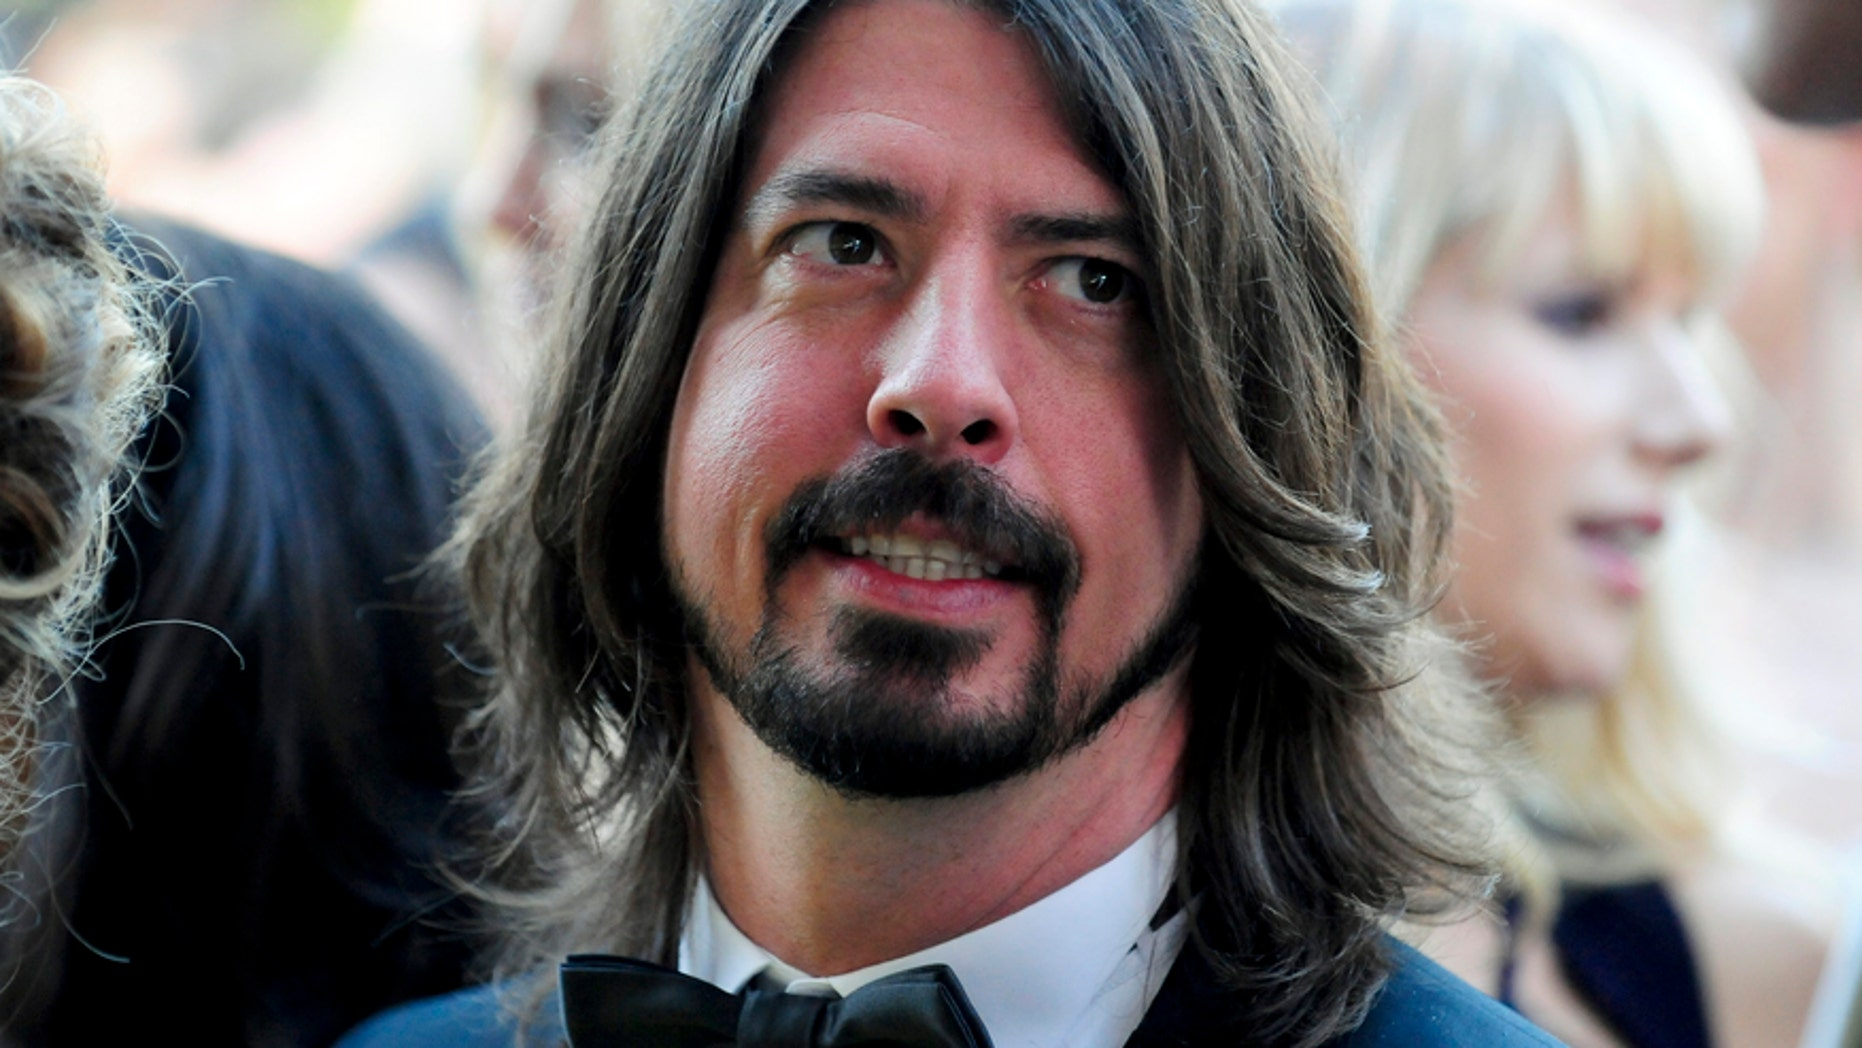 Singer David Grohl arrives at the 20th annual Elton John AIDS Foundation Academy Awards Viewing Party in West Hollywood, California February 26, 2012.